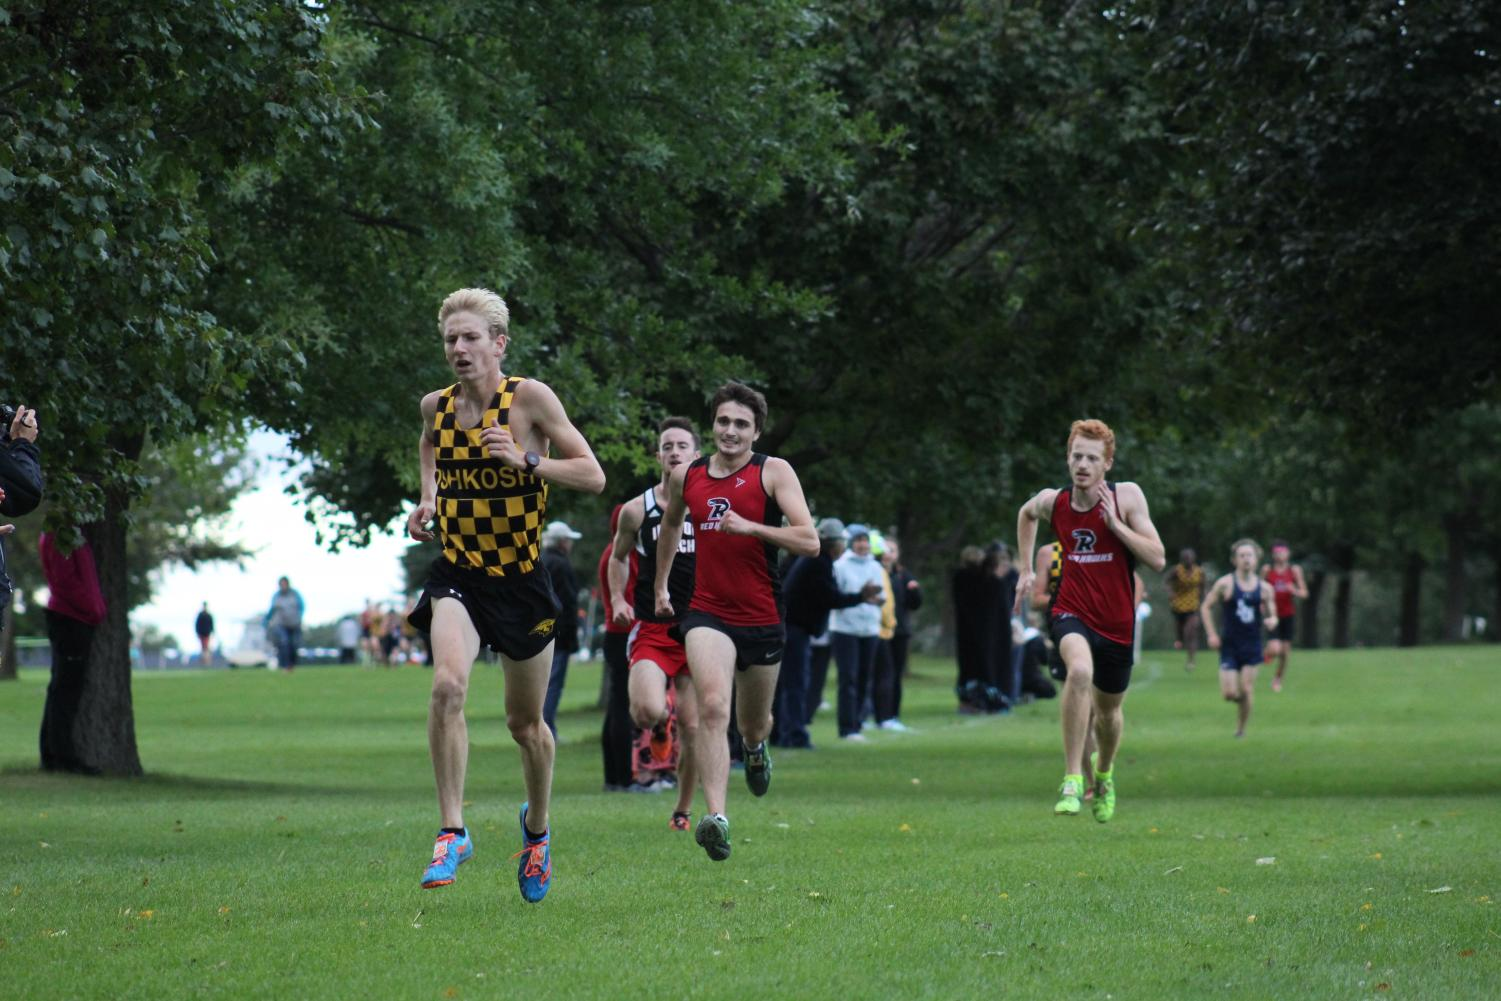 UWO freshman Andrew Strasser fends off an opposing runner as he sprints toward the finish line at the Titan Fall Classic on Sept. 21.